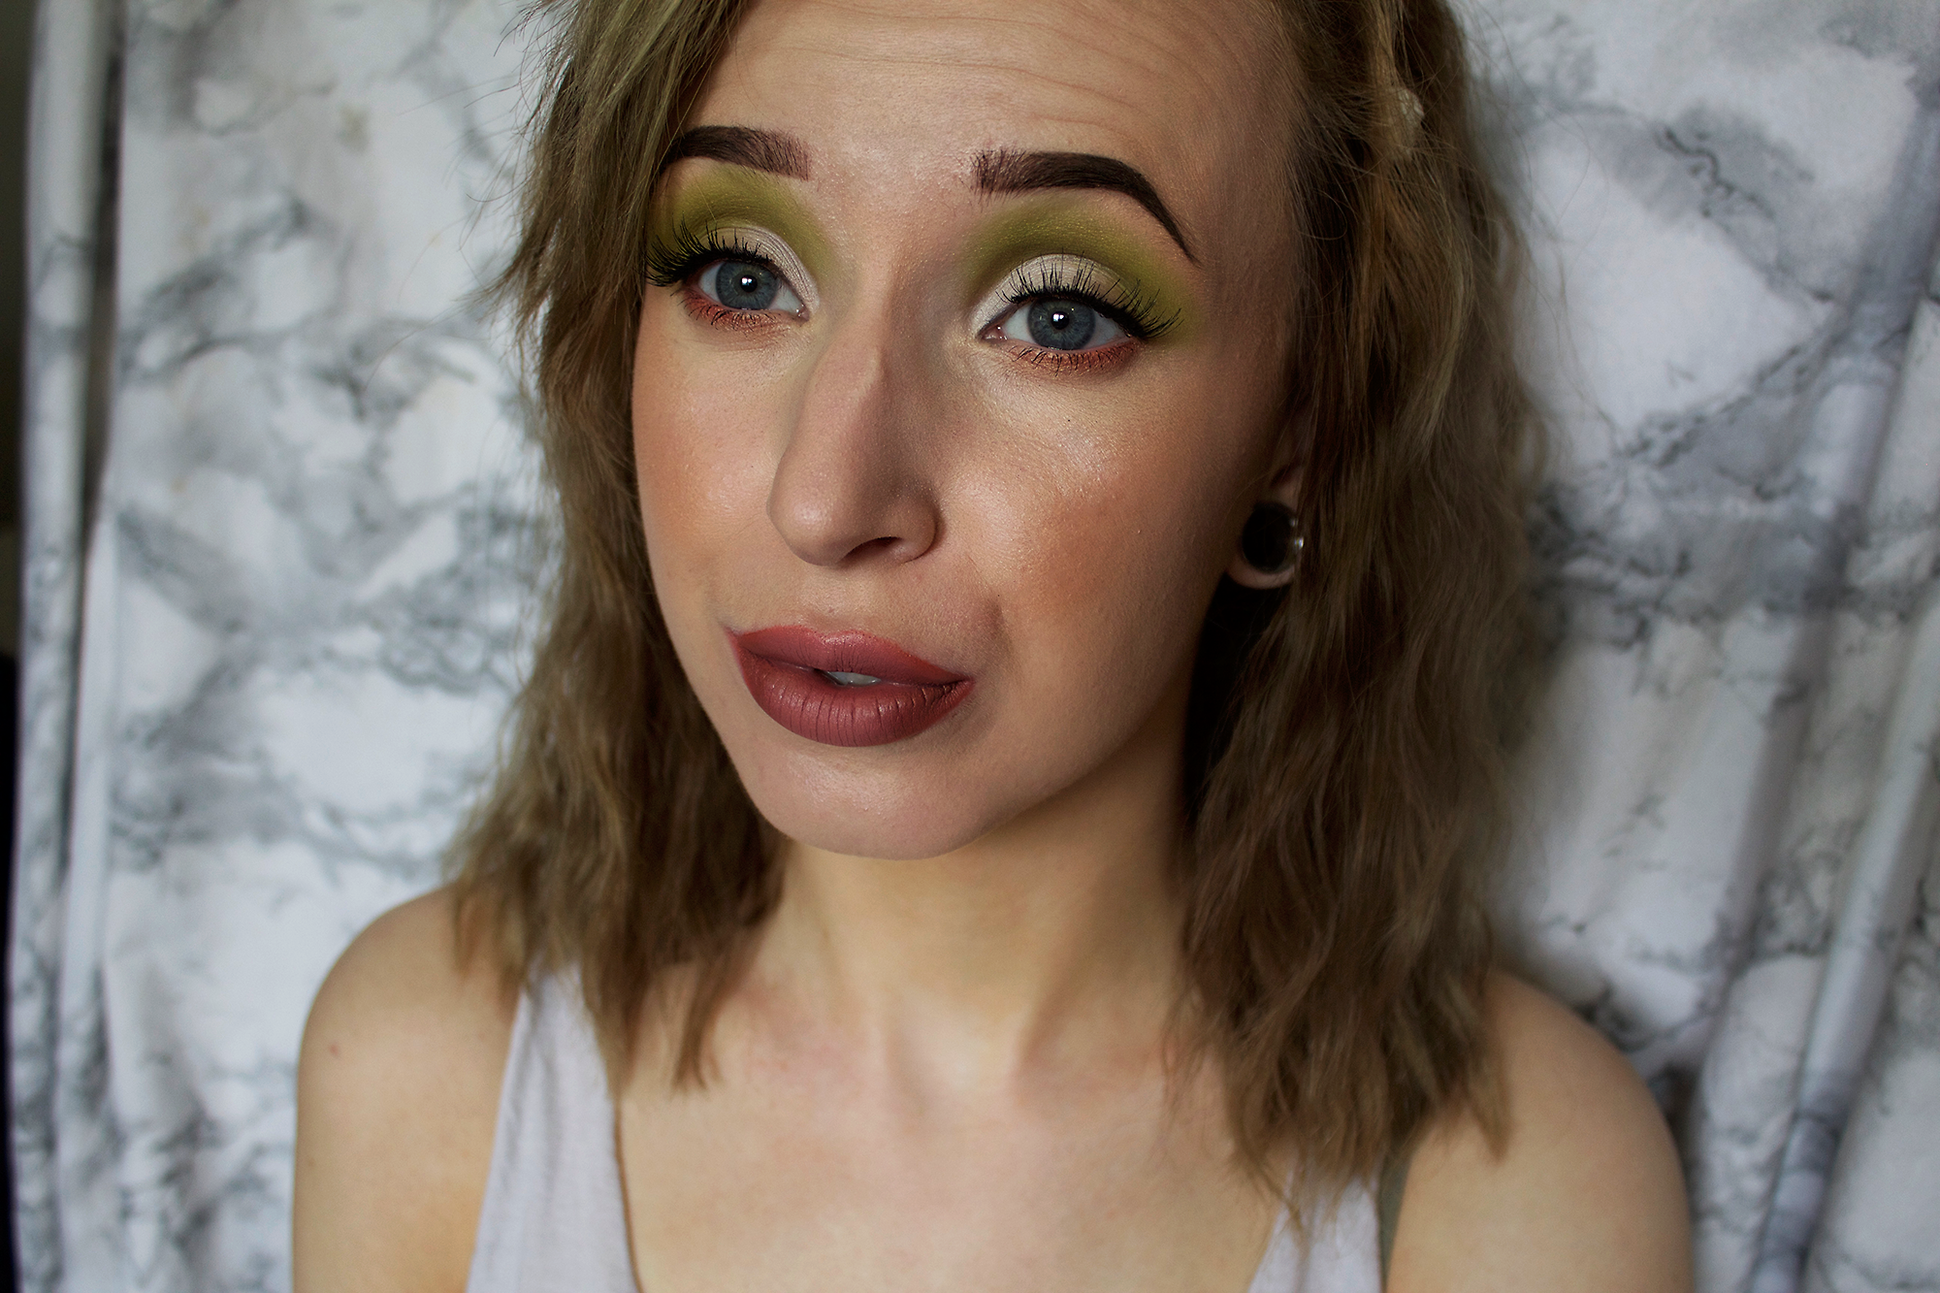 Makeup look: Green